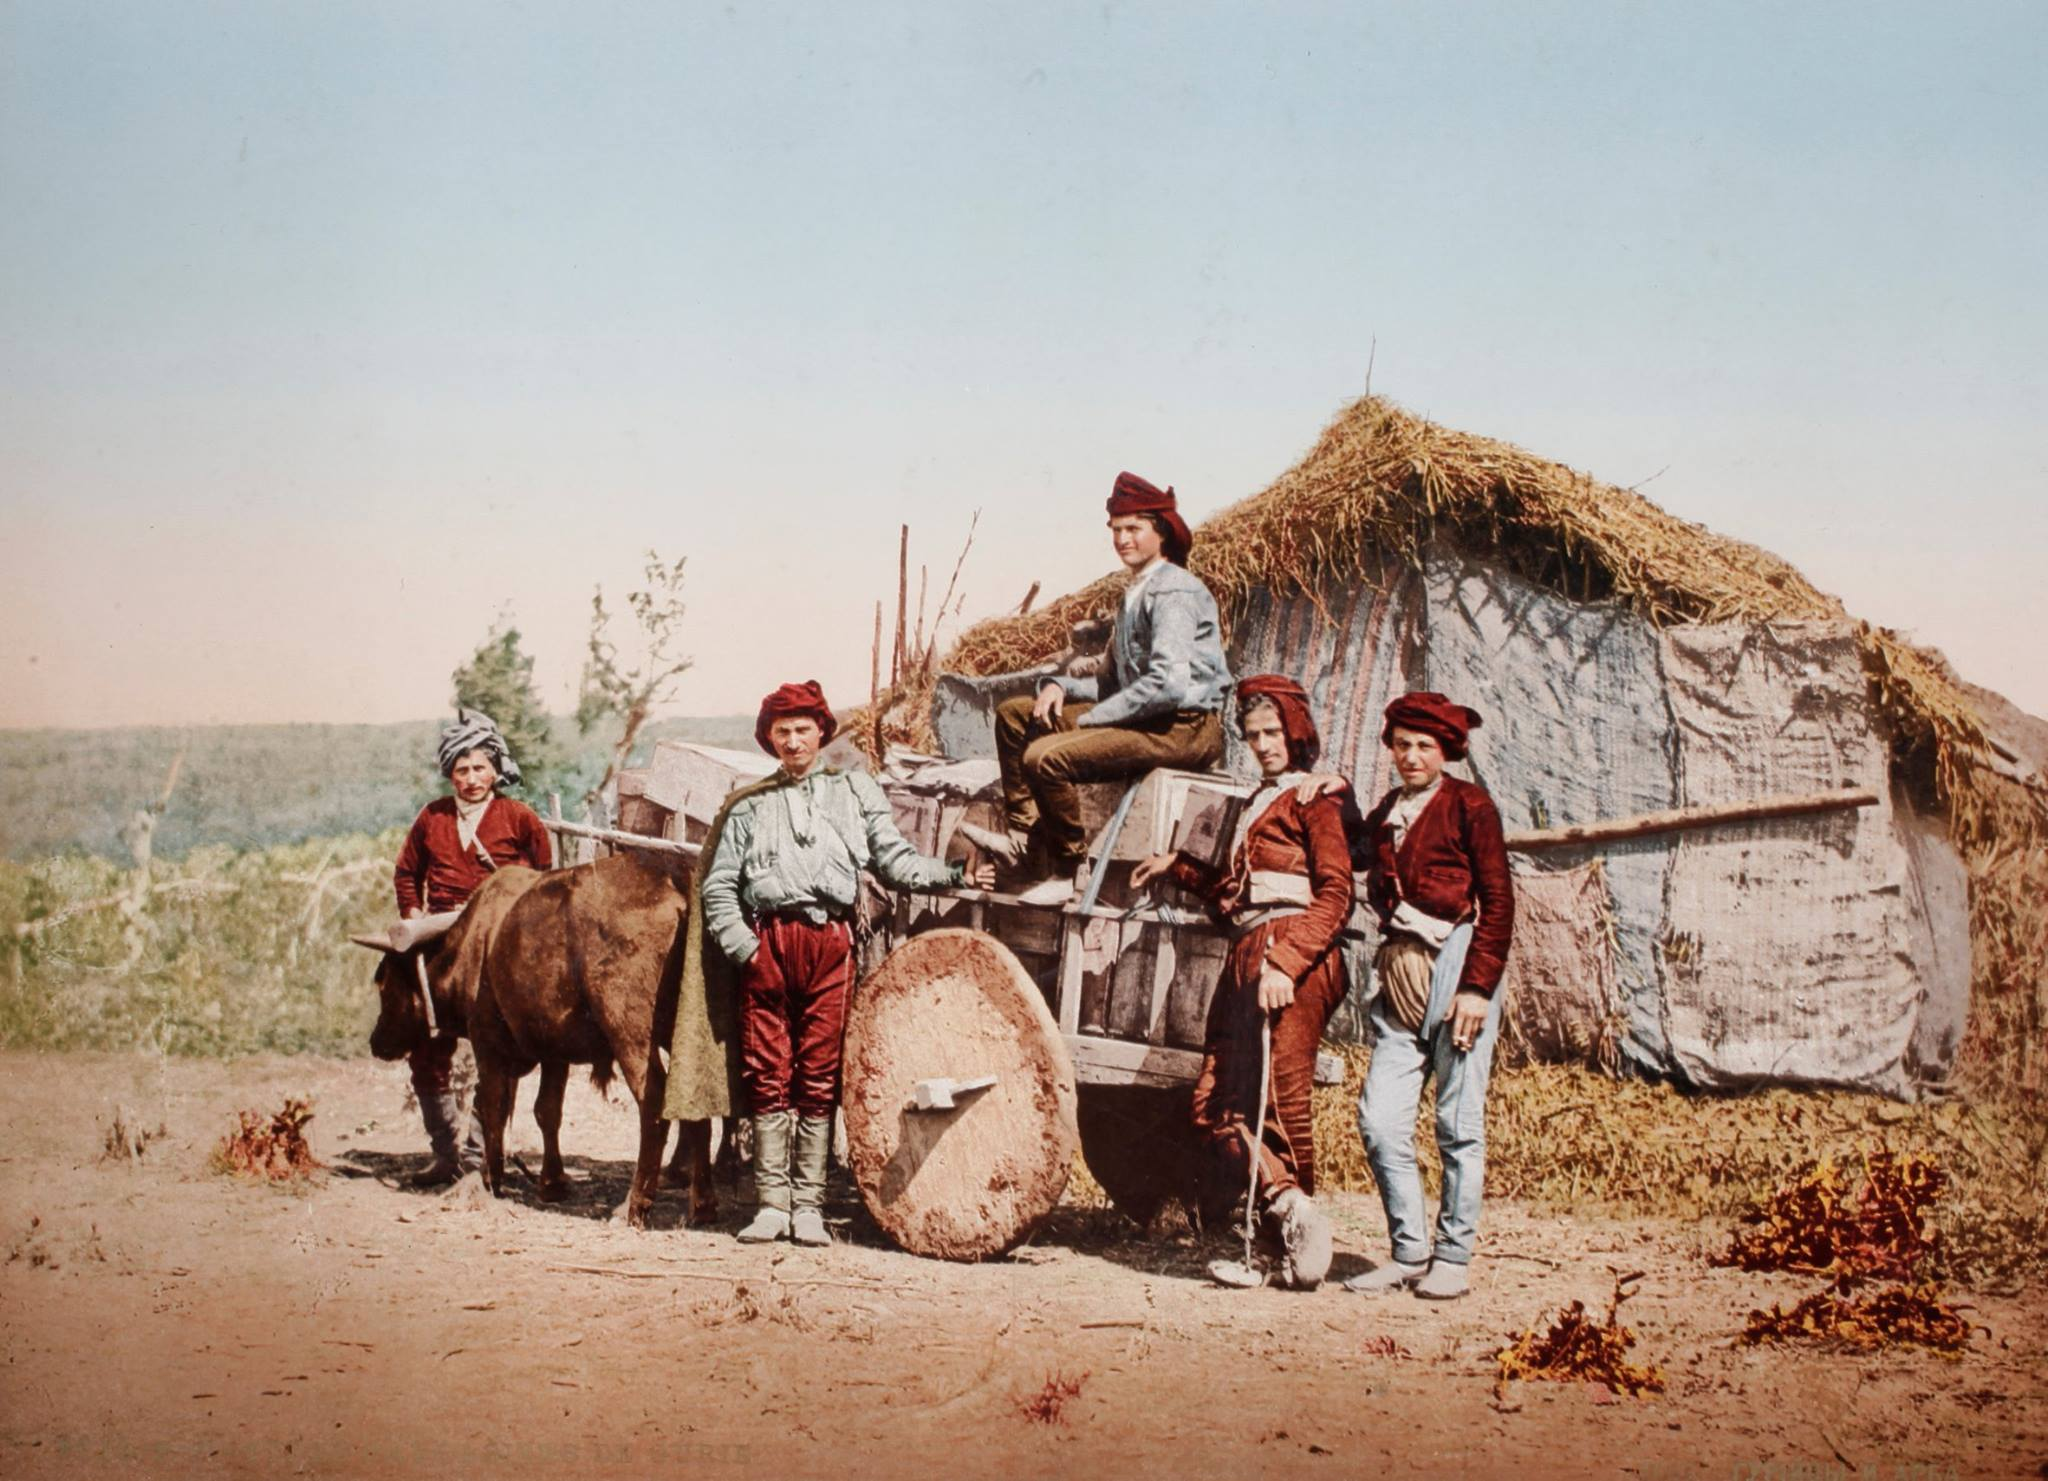 Georgian Farmers in Kobuleti, Georgia, 1877-78 at Russo-Ottoman War (Swiss Camera Museum)